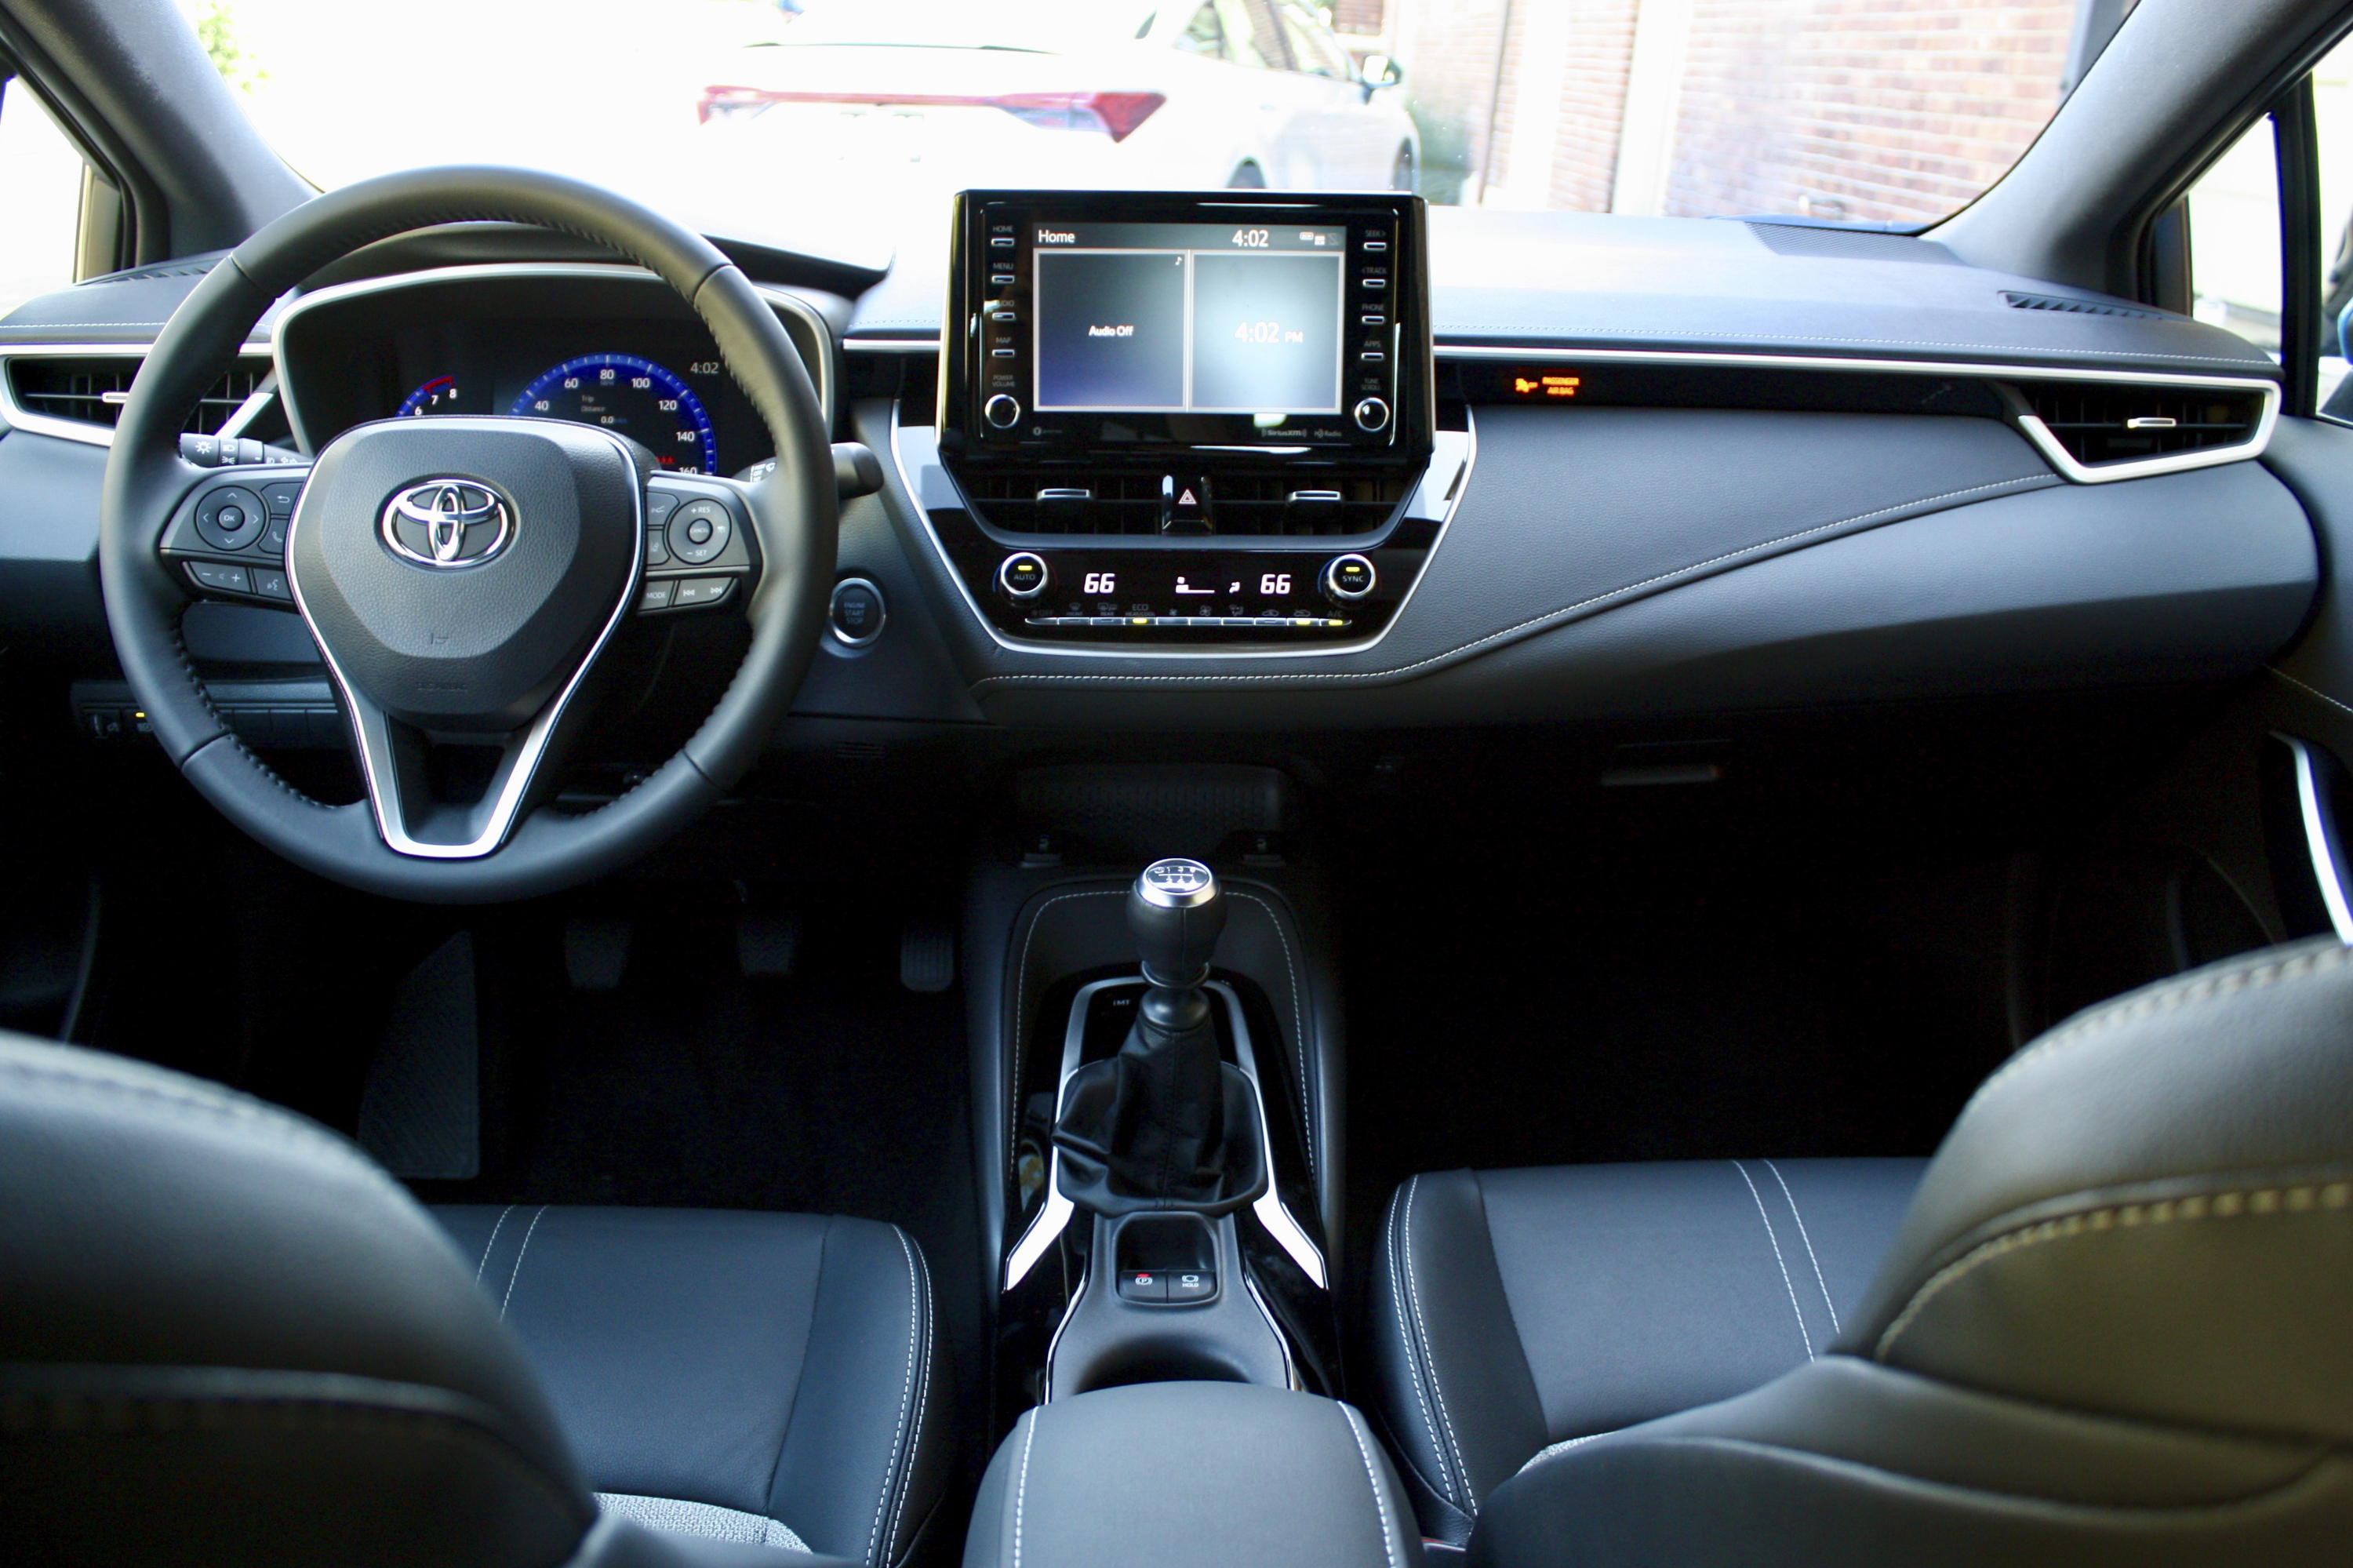 Toyota Corolla Owners Manual: Displaying the device status